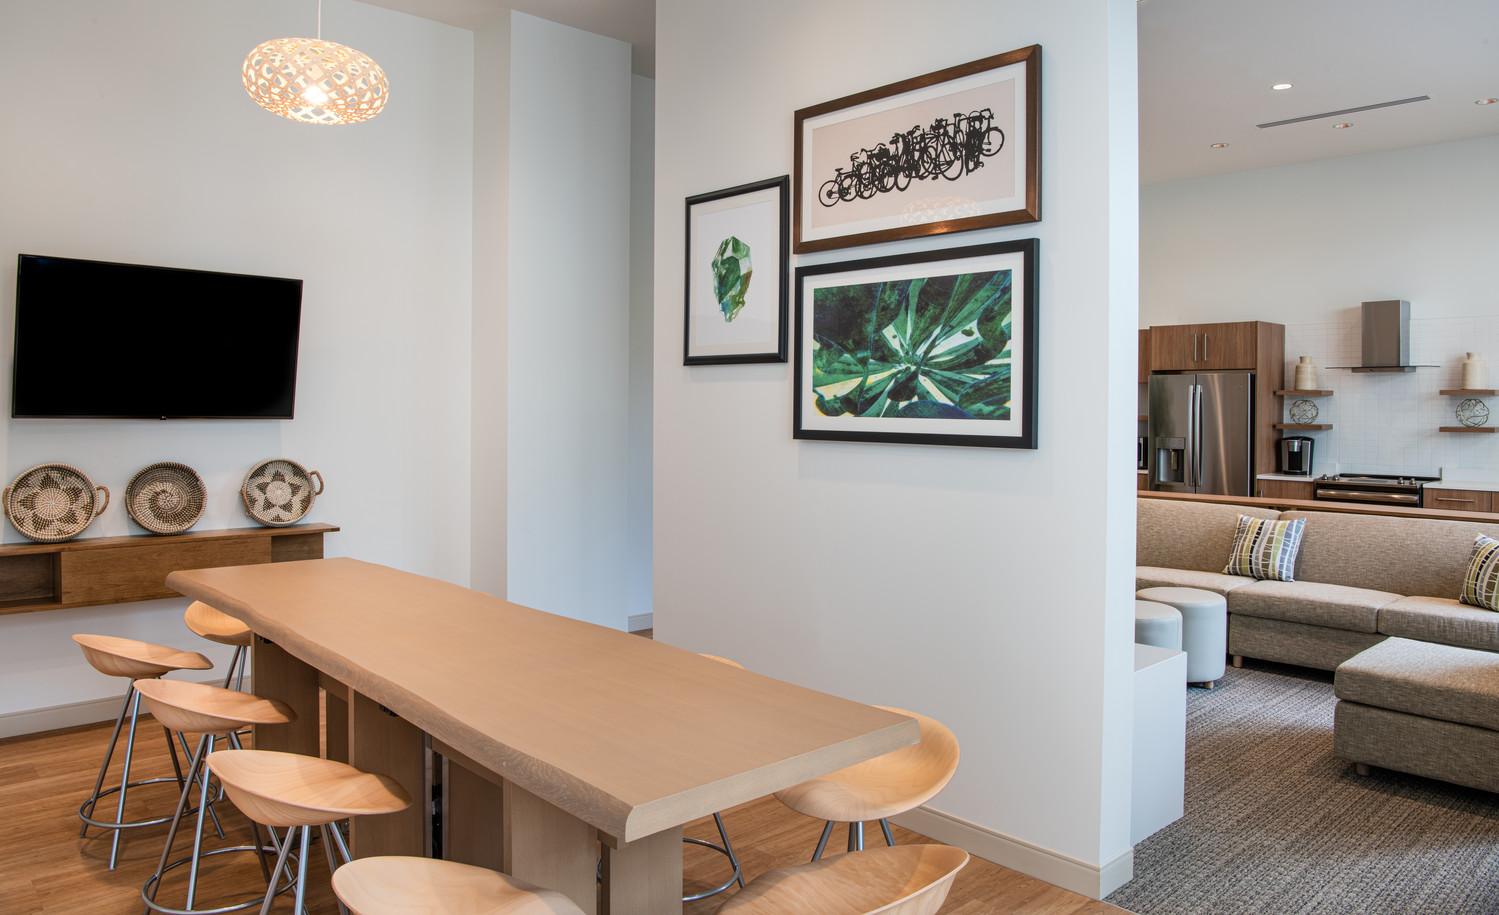 The Studio Commons communal spaces range from 600 to 650 square feet.